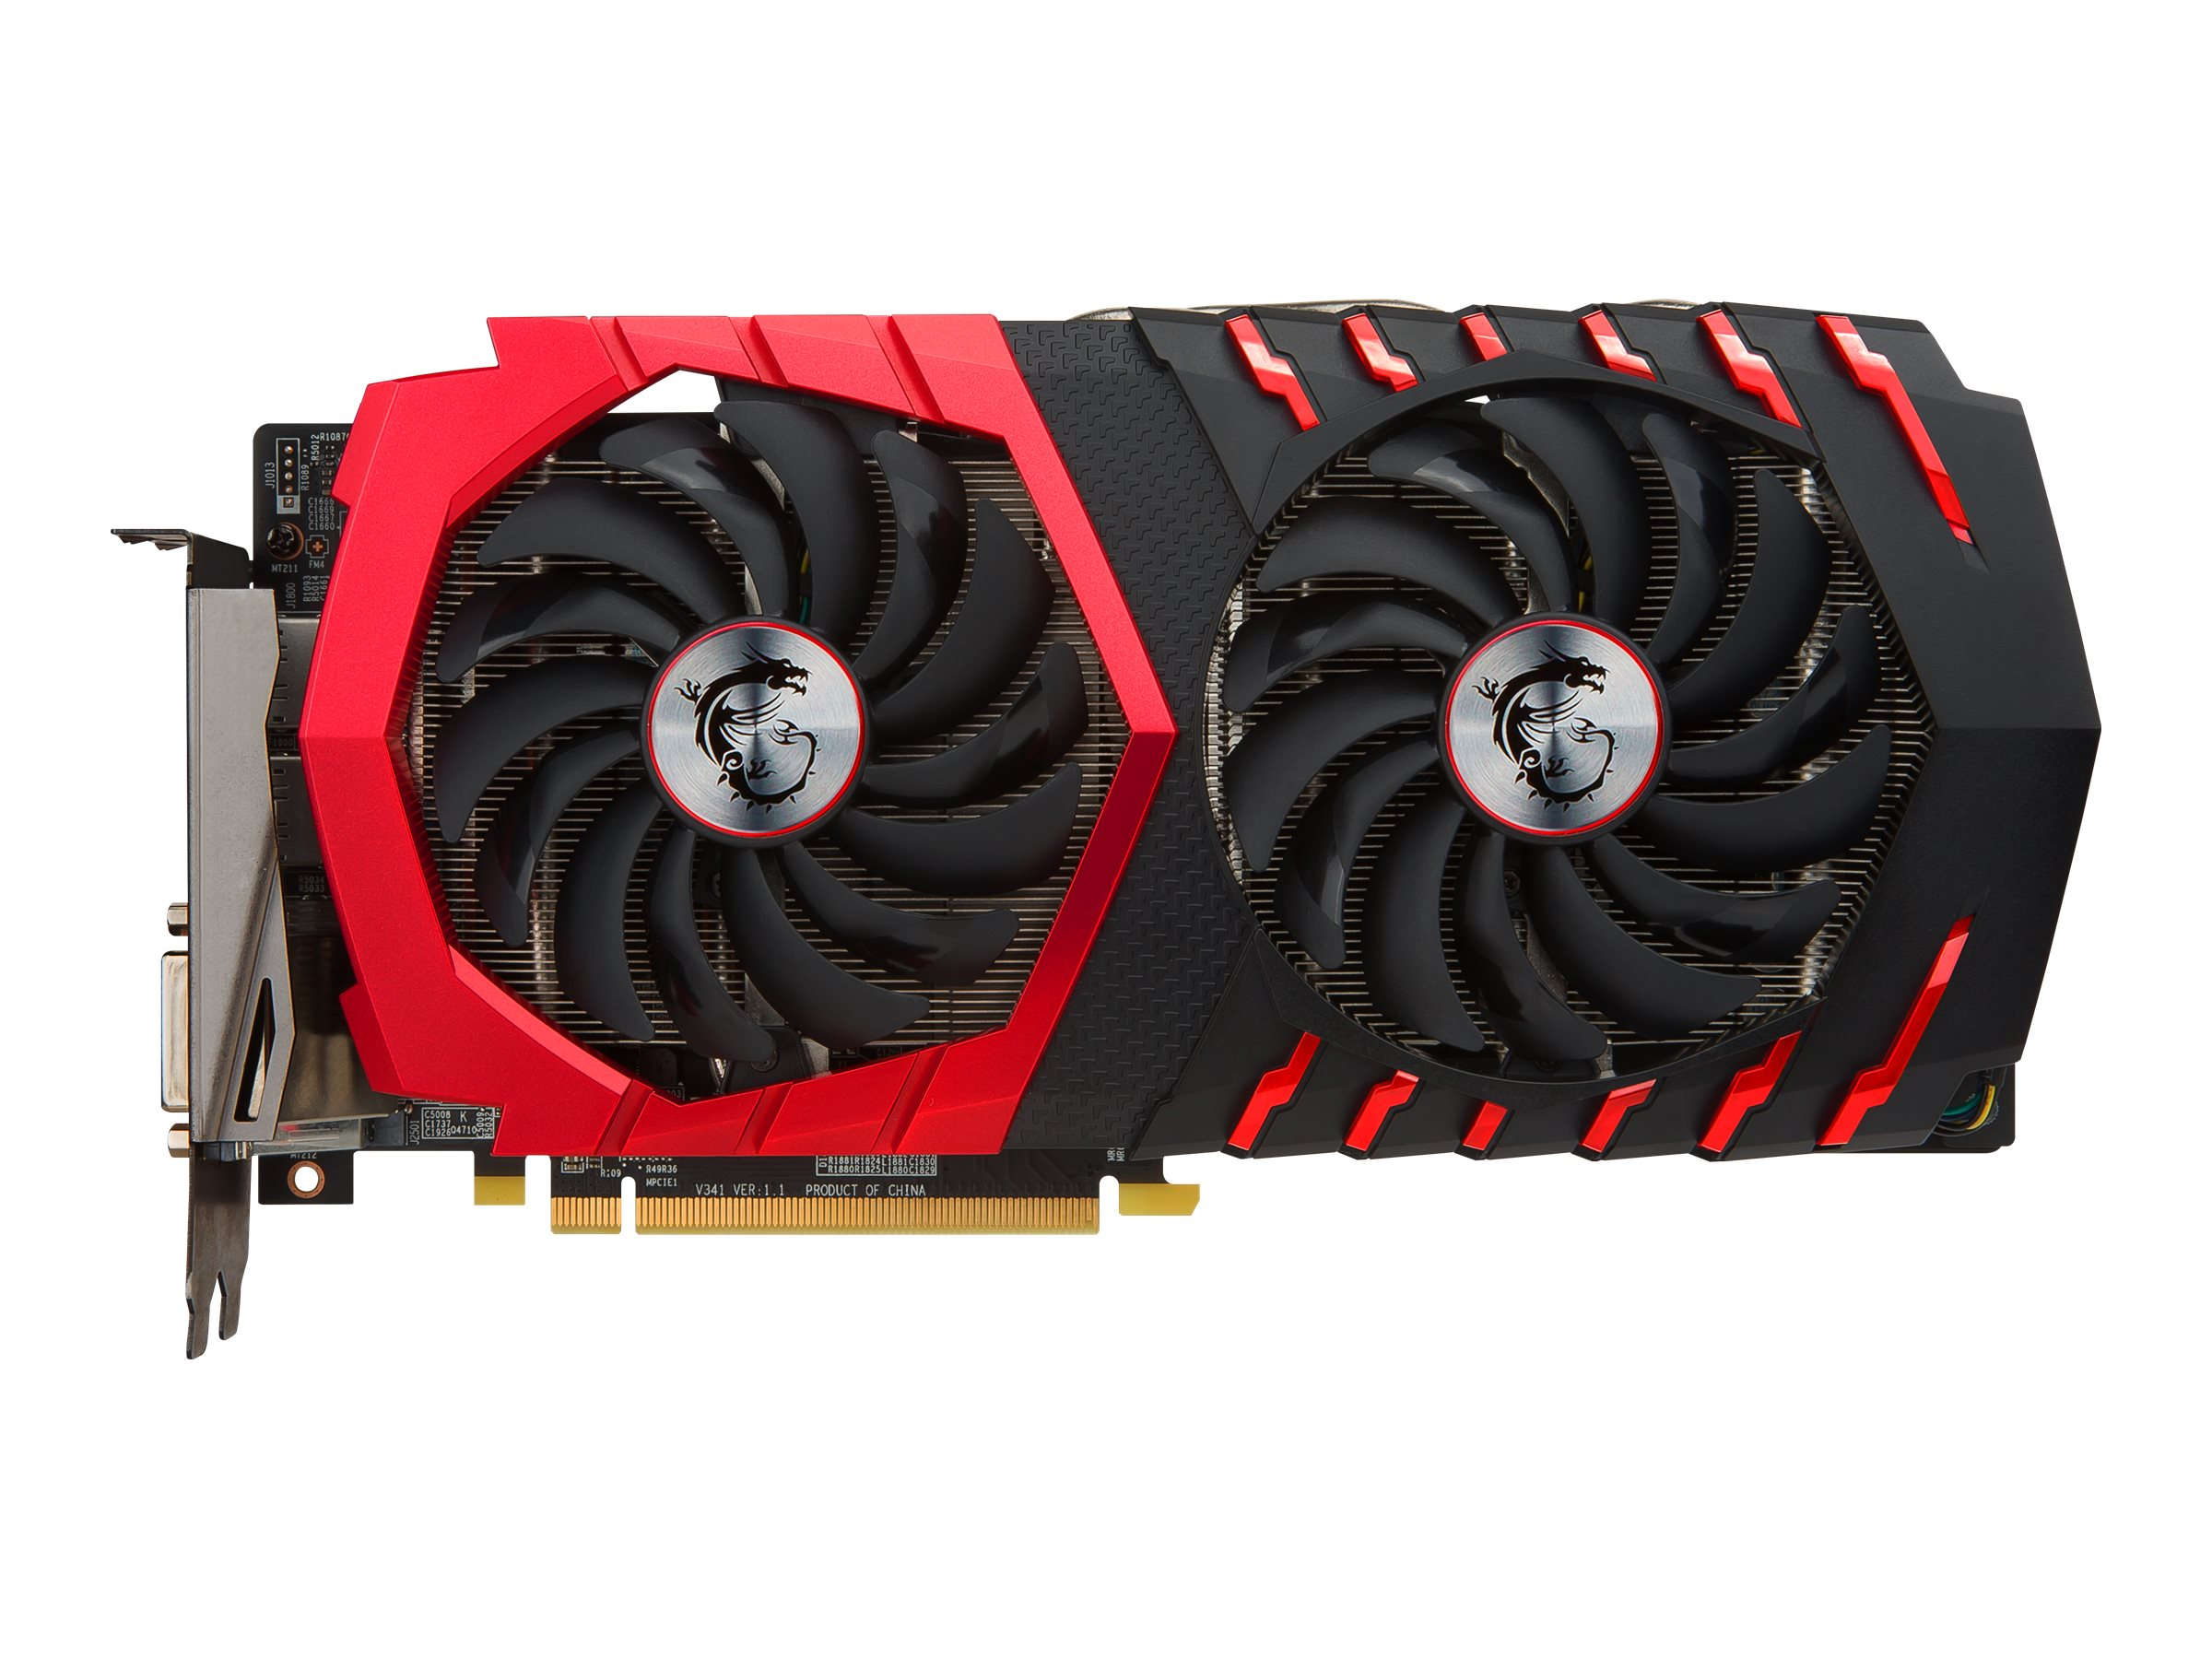 Microstar Radeon RX 470 PCIe 3.0 Graphics Card, 4GB GDDR5